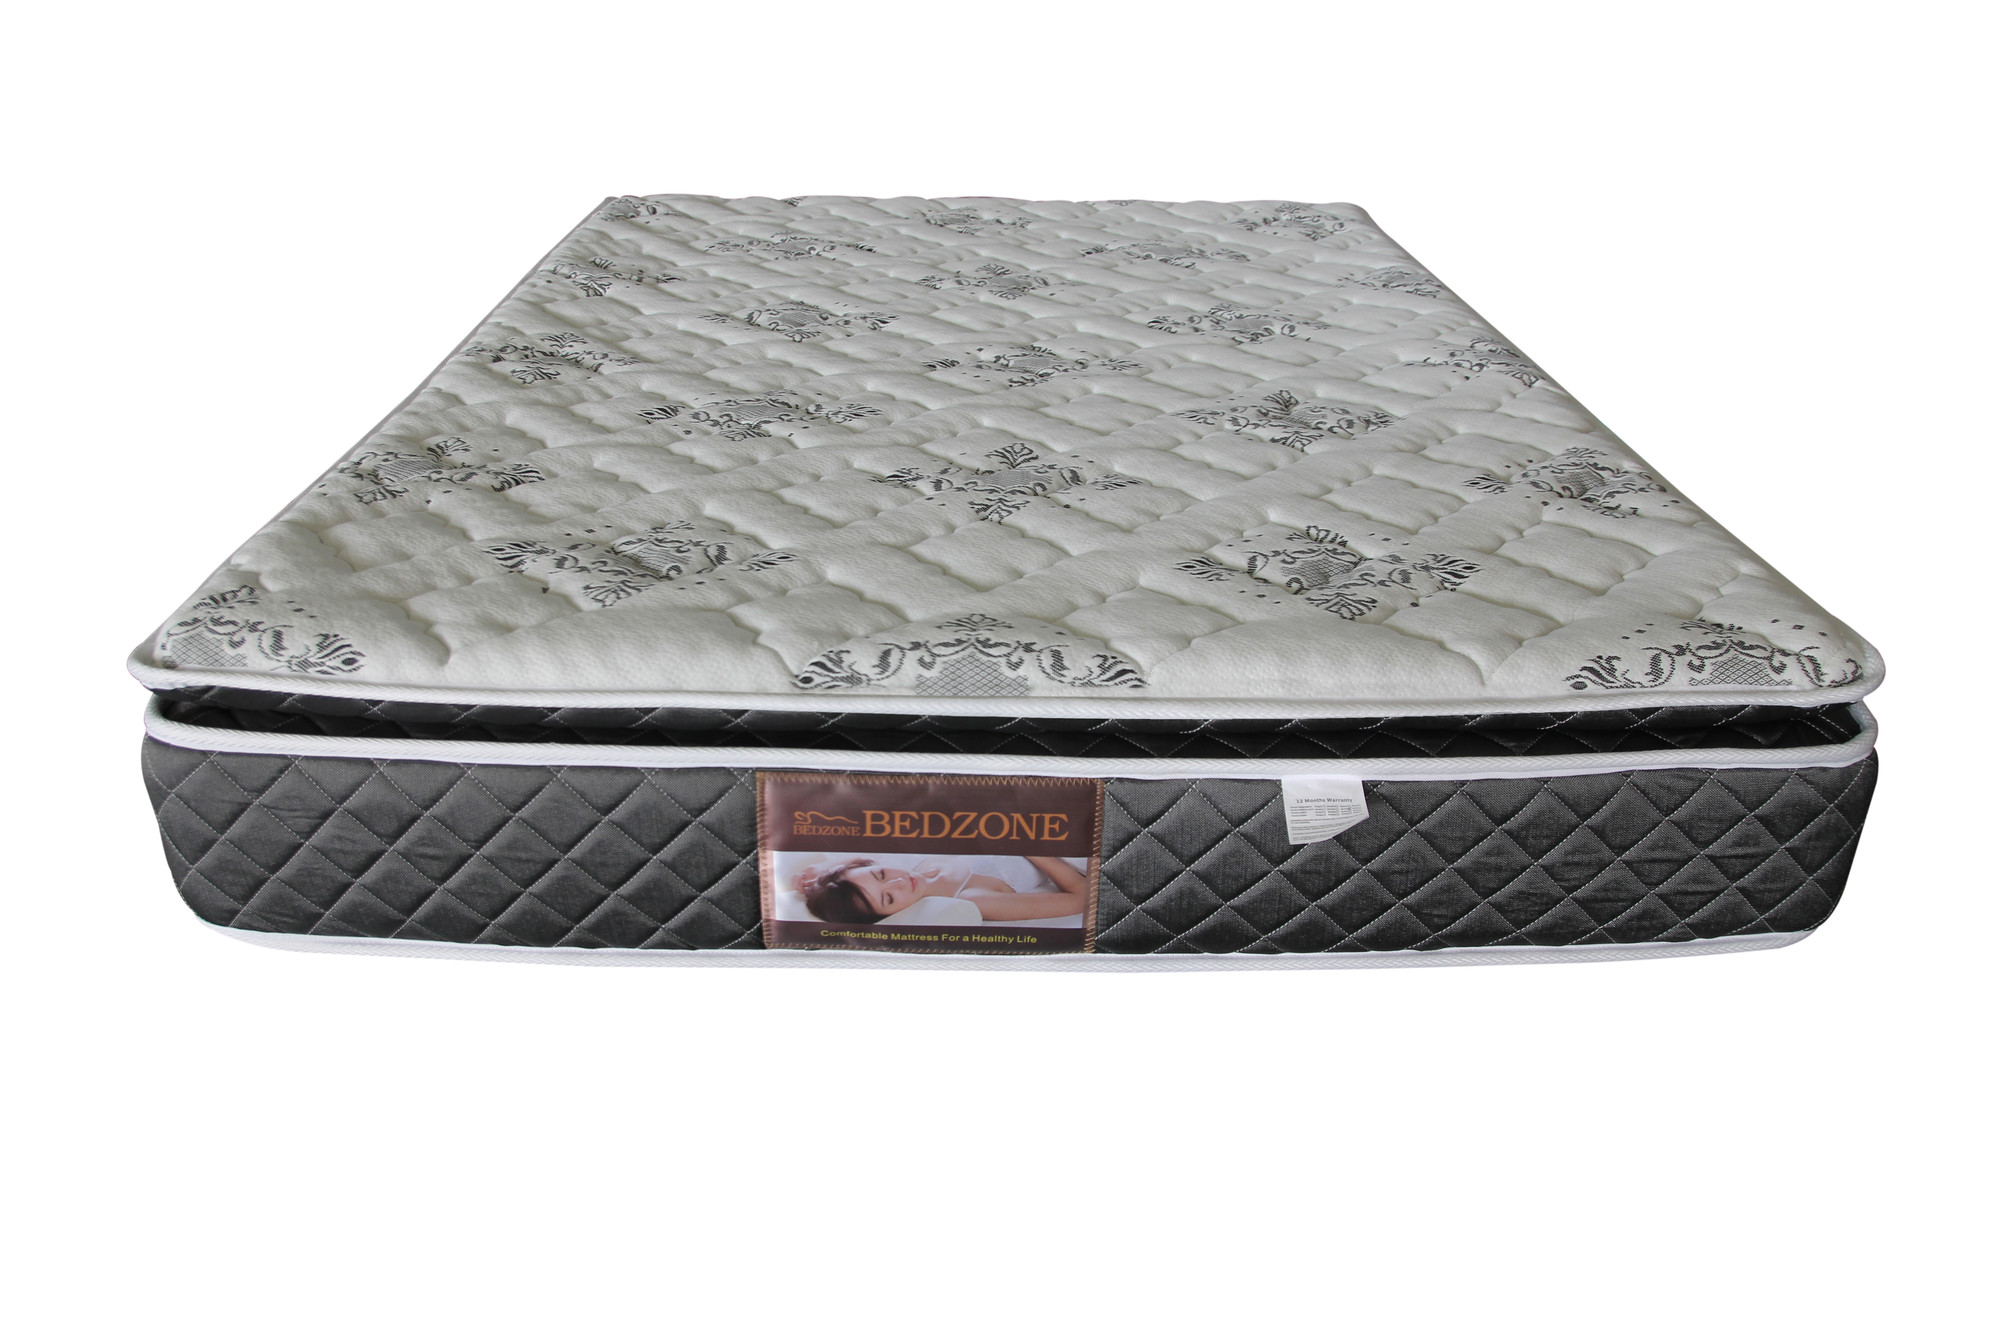 duck pad capella mattress king superb down eastman euroquilt stunning feather myergobed toppers dazzling full important heated house pillow plush topper cool highest valuable air fascinate rated and top size f impressive of fantastic best